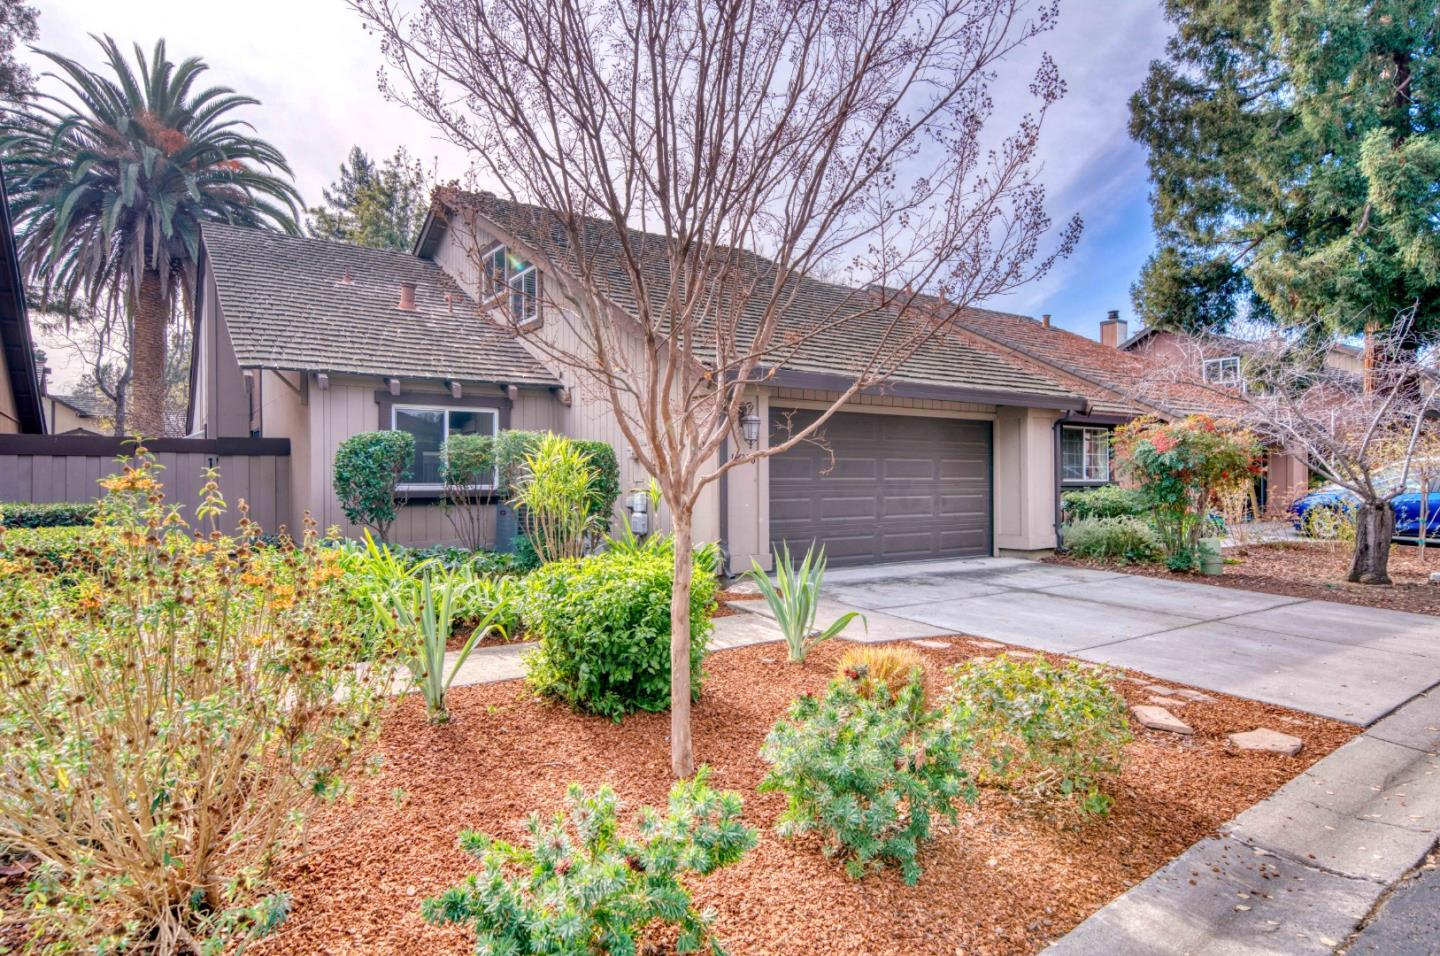 This gorgeous single-family home is located in the hub of Silicon Valley - Cupertino. Award-winning Cupertino Union School District and proximity to most major High tech employers. This unit boasts 2 bedrooms, 2 bathrooms, and 2 garage spaces, with a private backyard. Gorgeous floorplan with a wet bar downstairs, and a small art studio upstairs. Join Zoom meetings from your primary suite or the office downstairs. Easy access to most major highways.